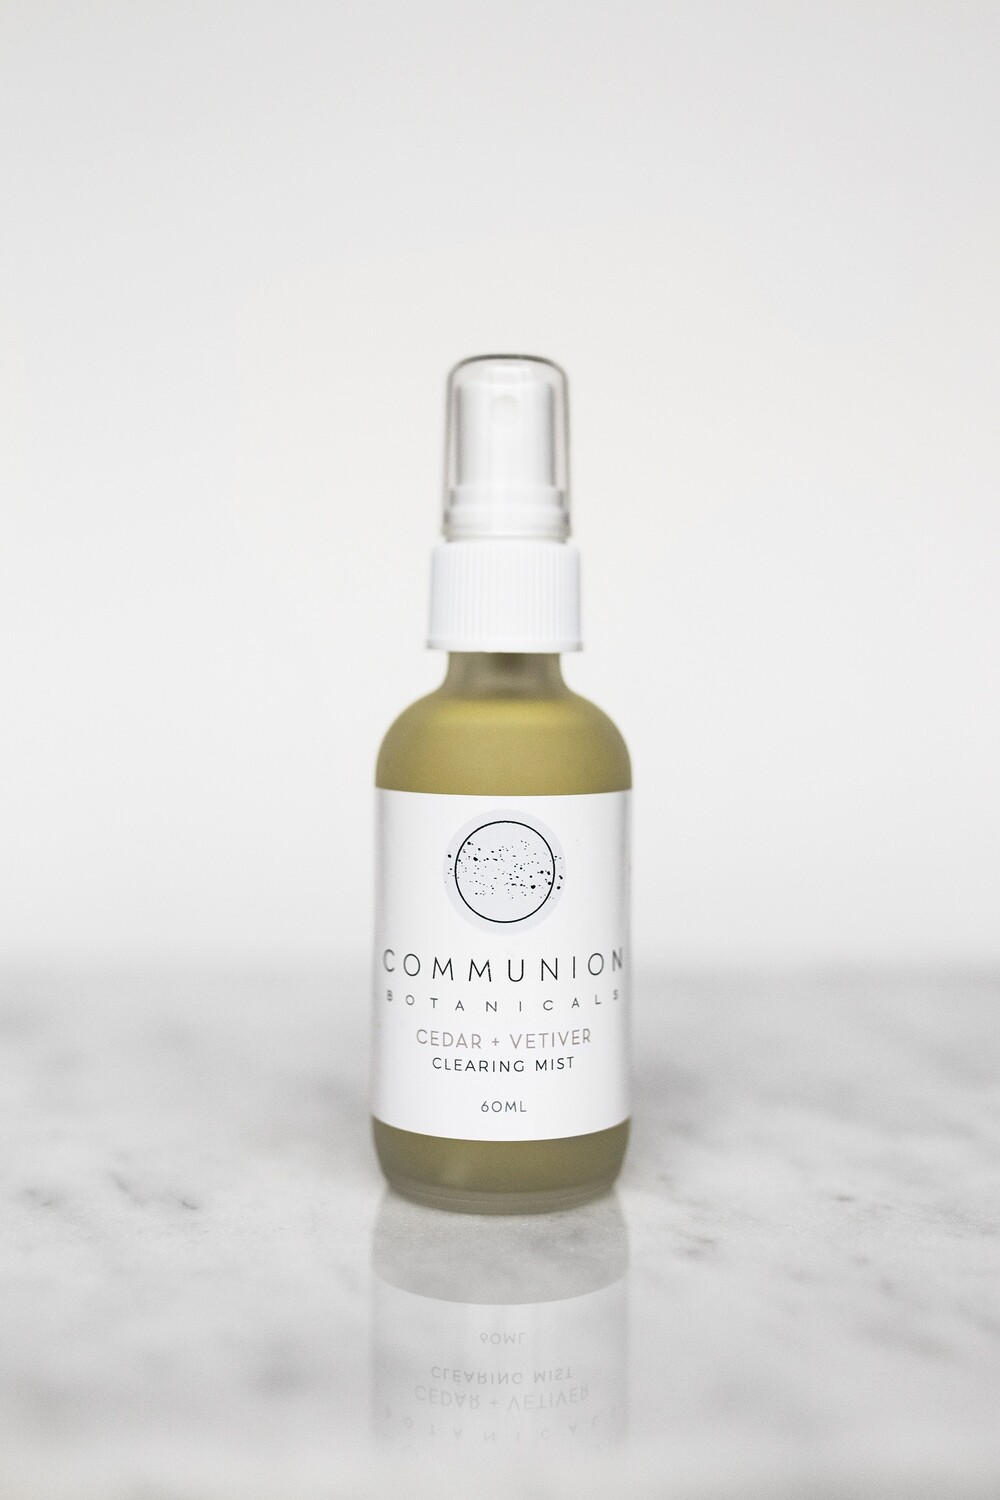 Cedar & Vetiver Clearing Mist